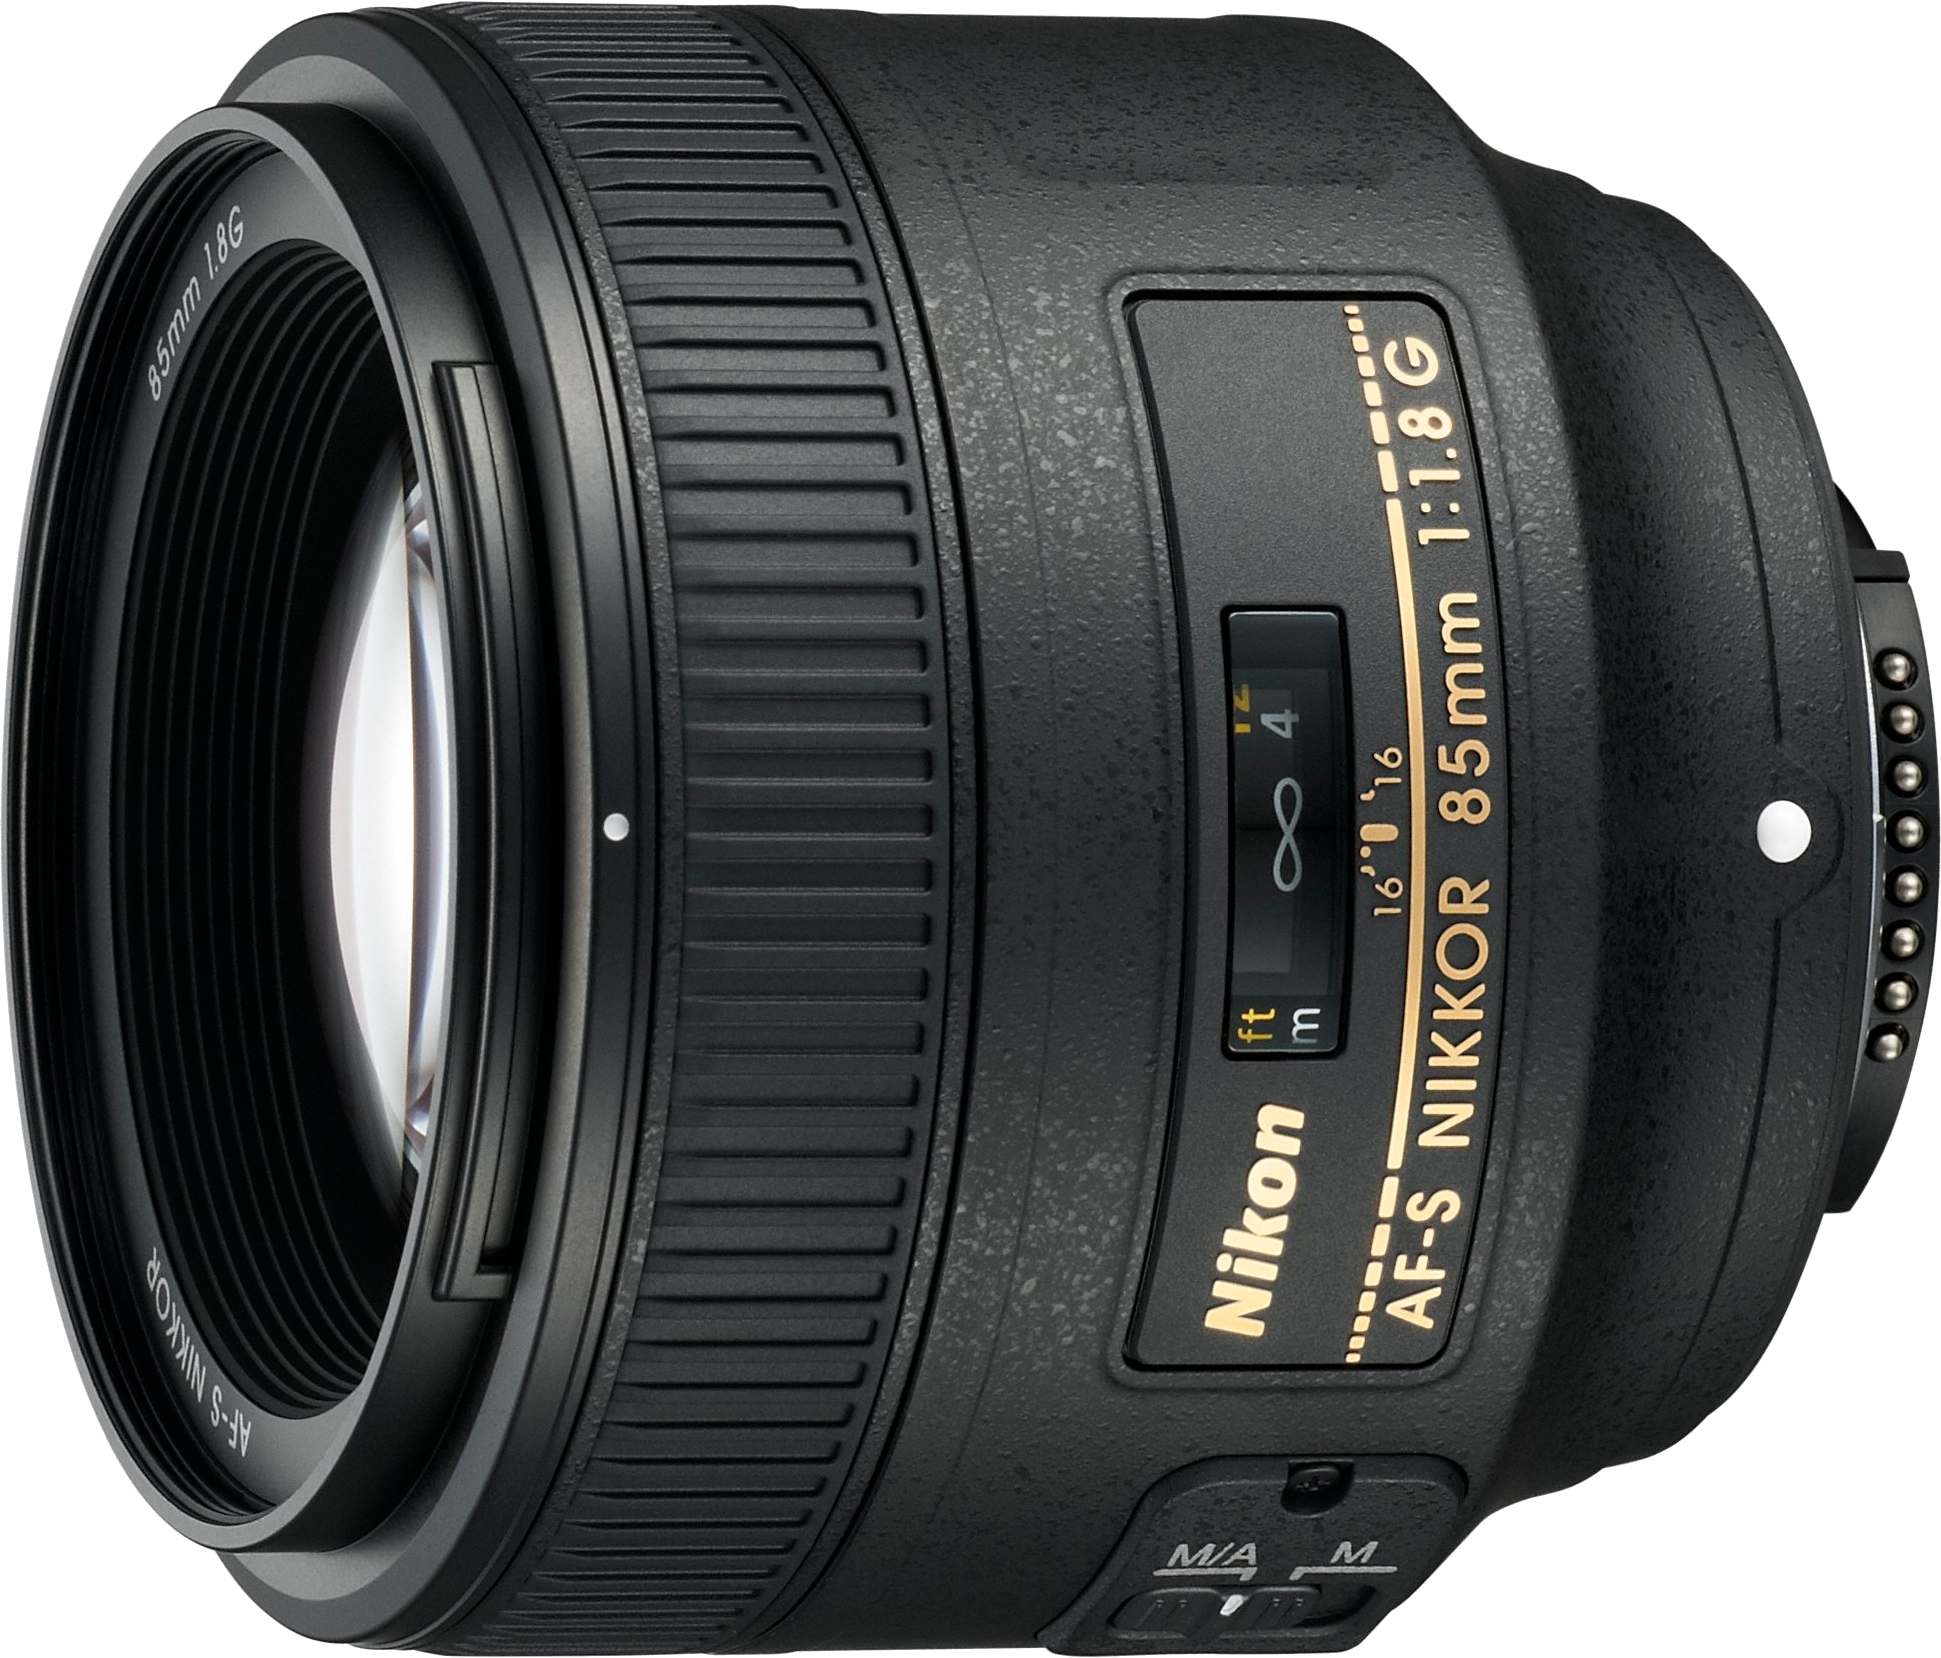 The newest version of Nikon's 85mm f/1.8 telephoto.  This lens will autofocus on all Nikon DSLRs.